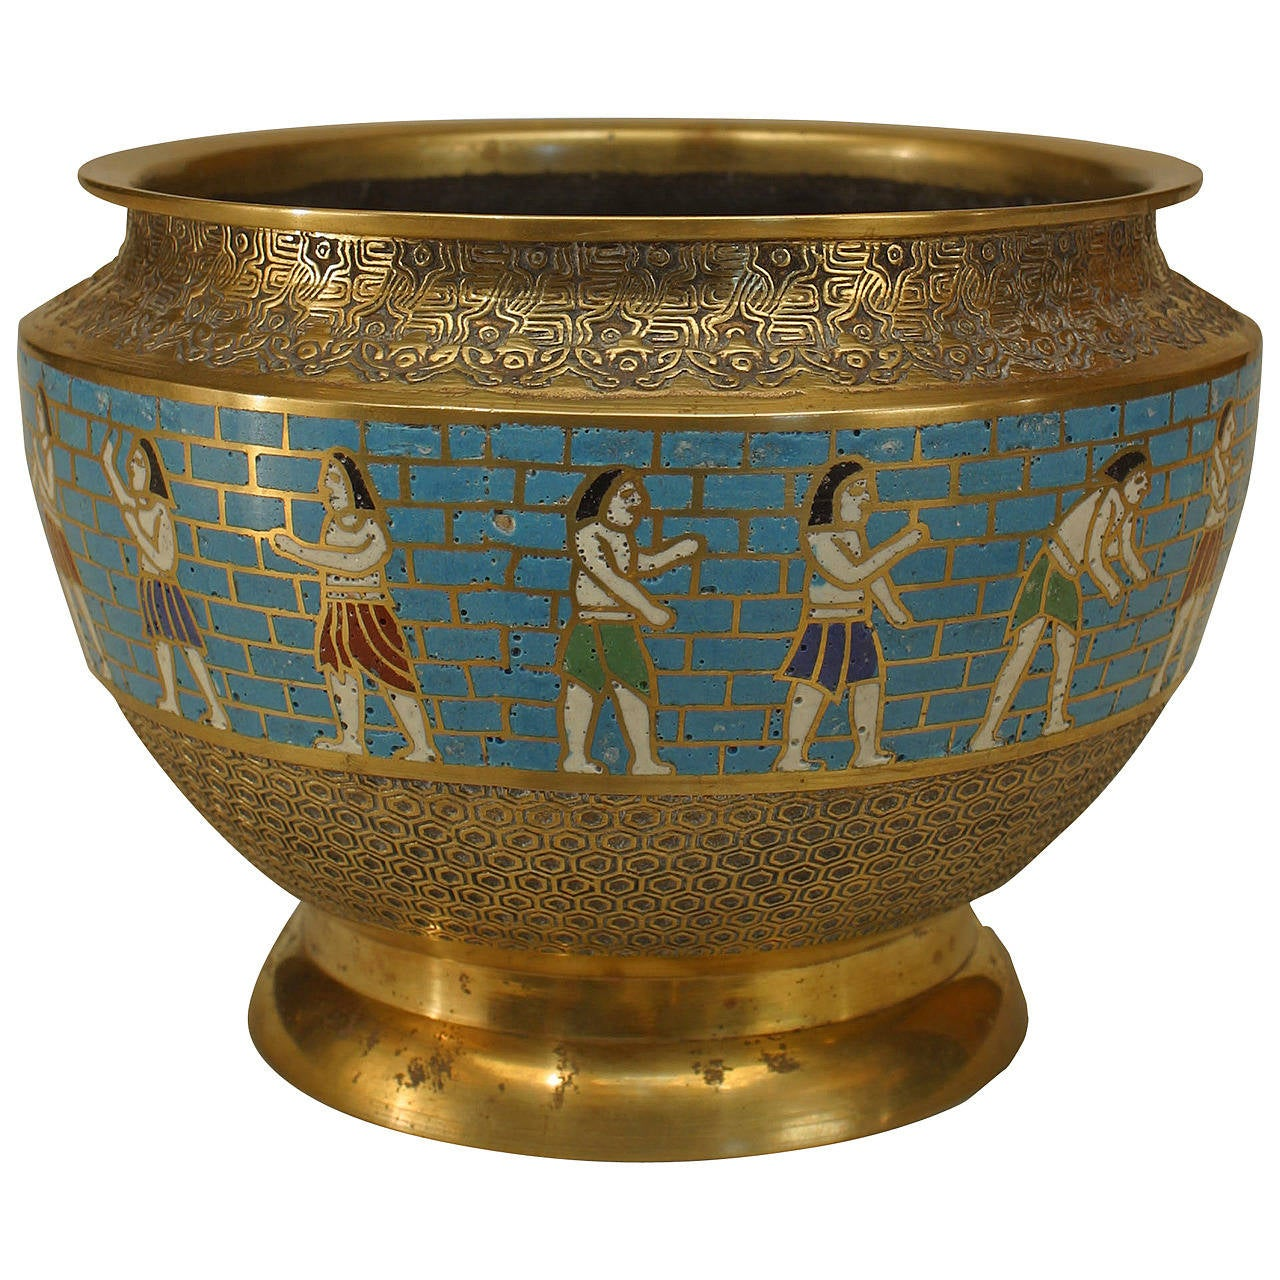 egyptian revival figural cloisonne bowl for sale at 1stdibs. Black Bedroom Furniture Sets. Home Design Ideas